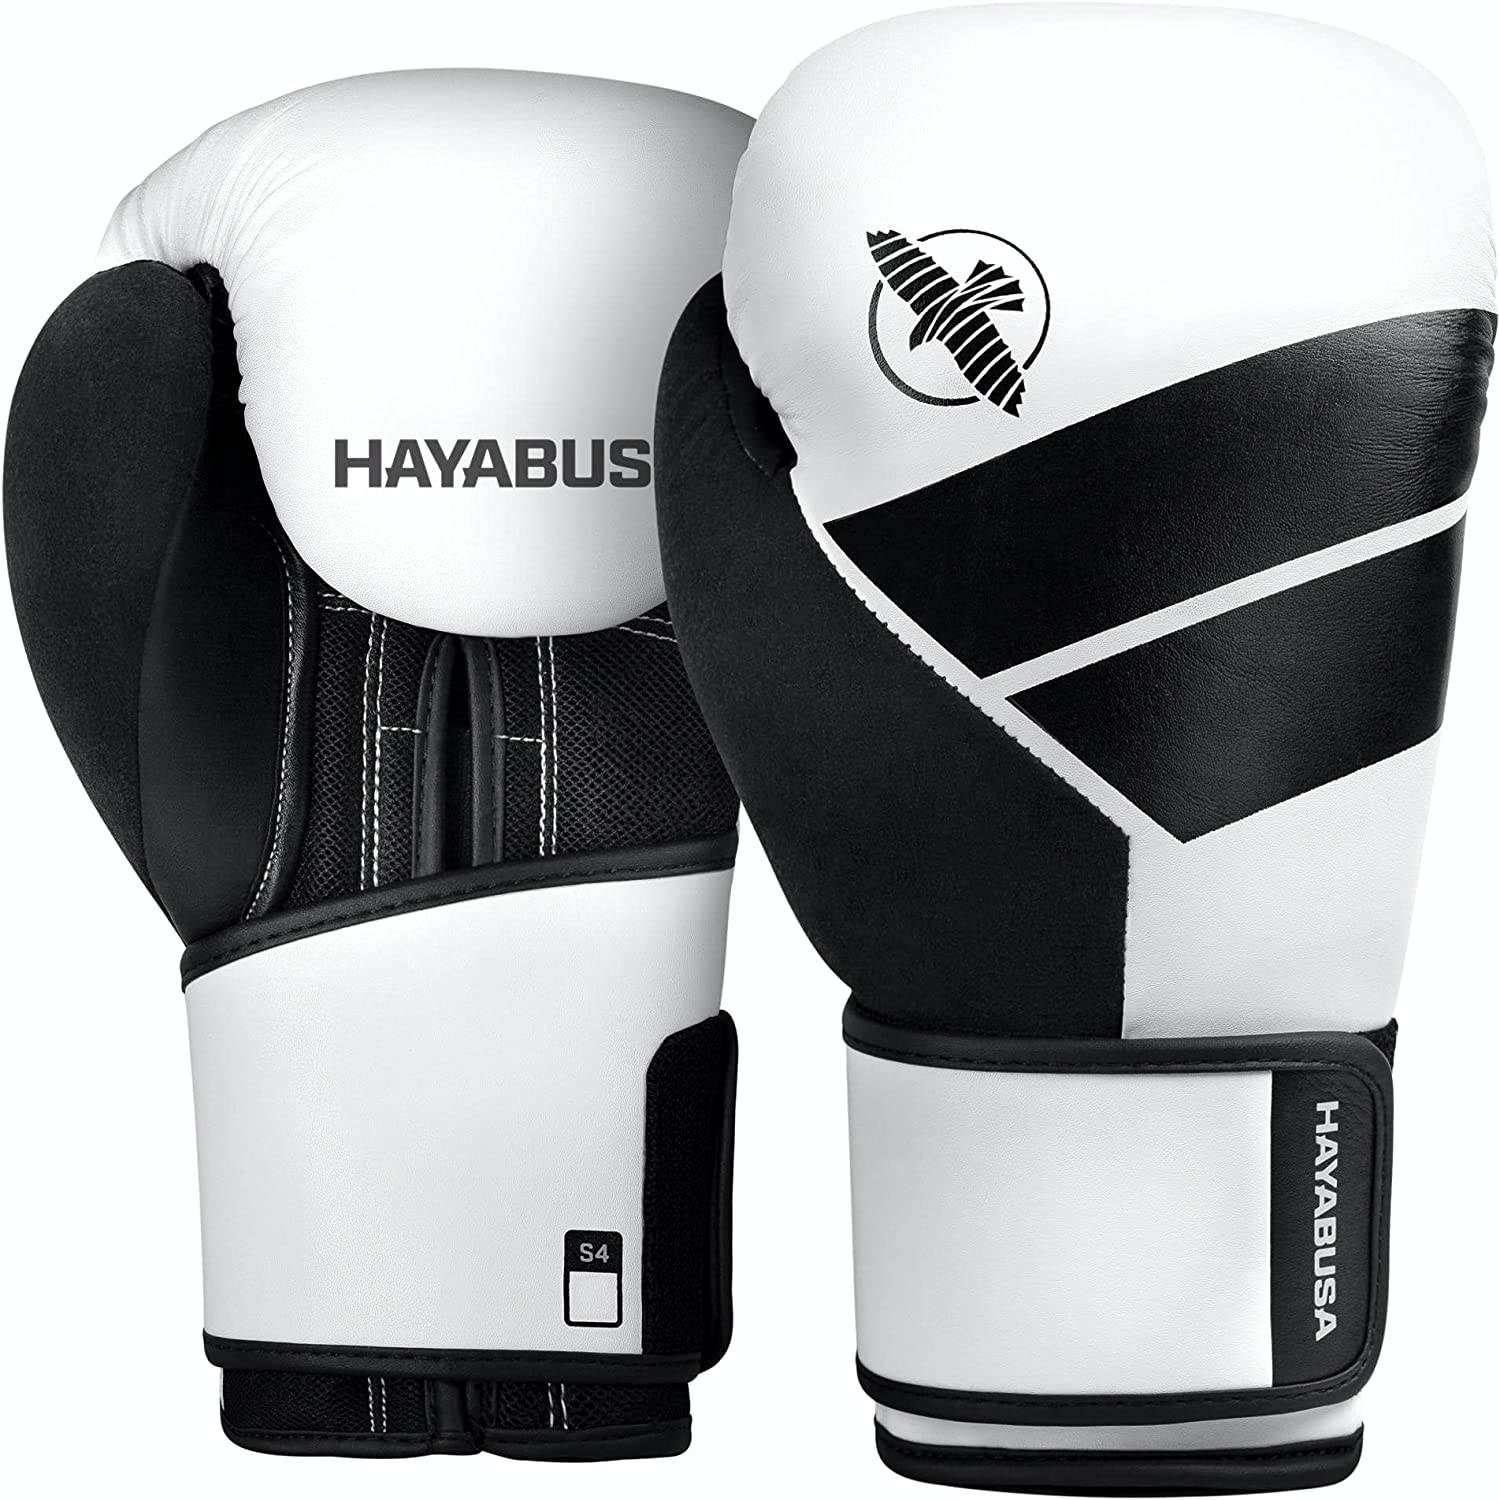 Hayabusa S4 Kids Boxing Gloves and for Girls Max 81% OFF Opening large release sale Boys